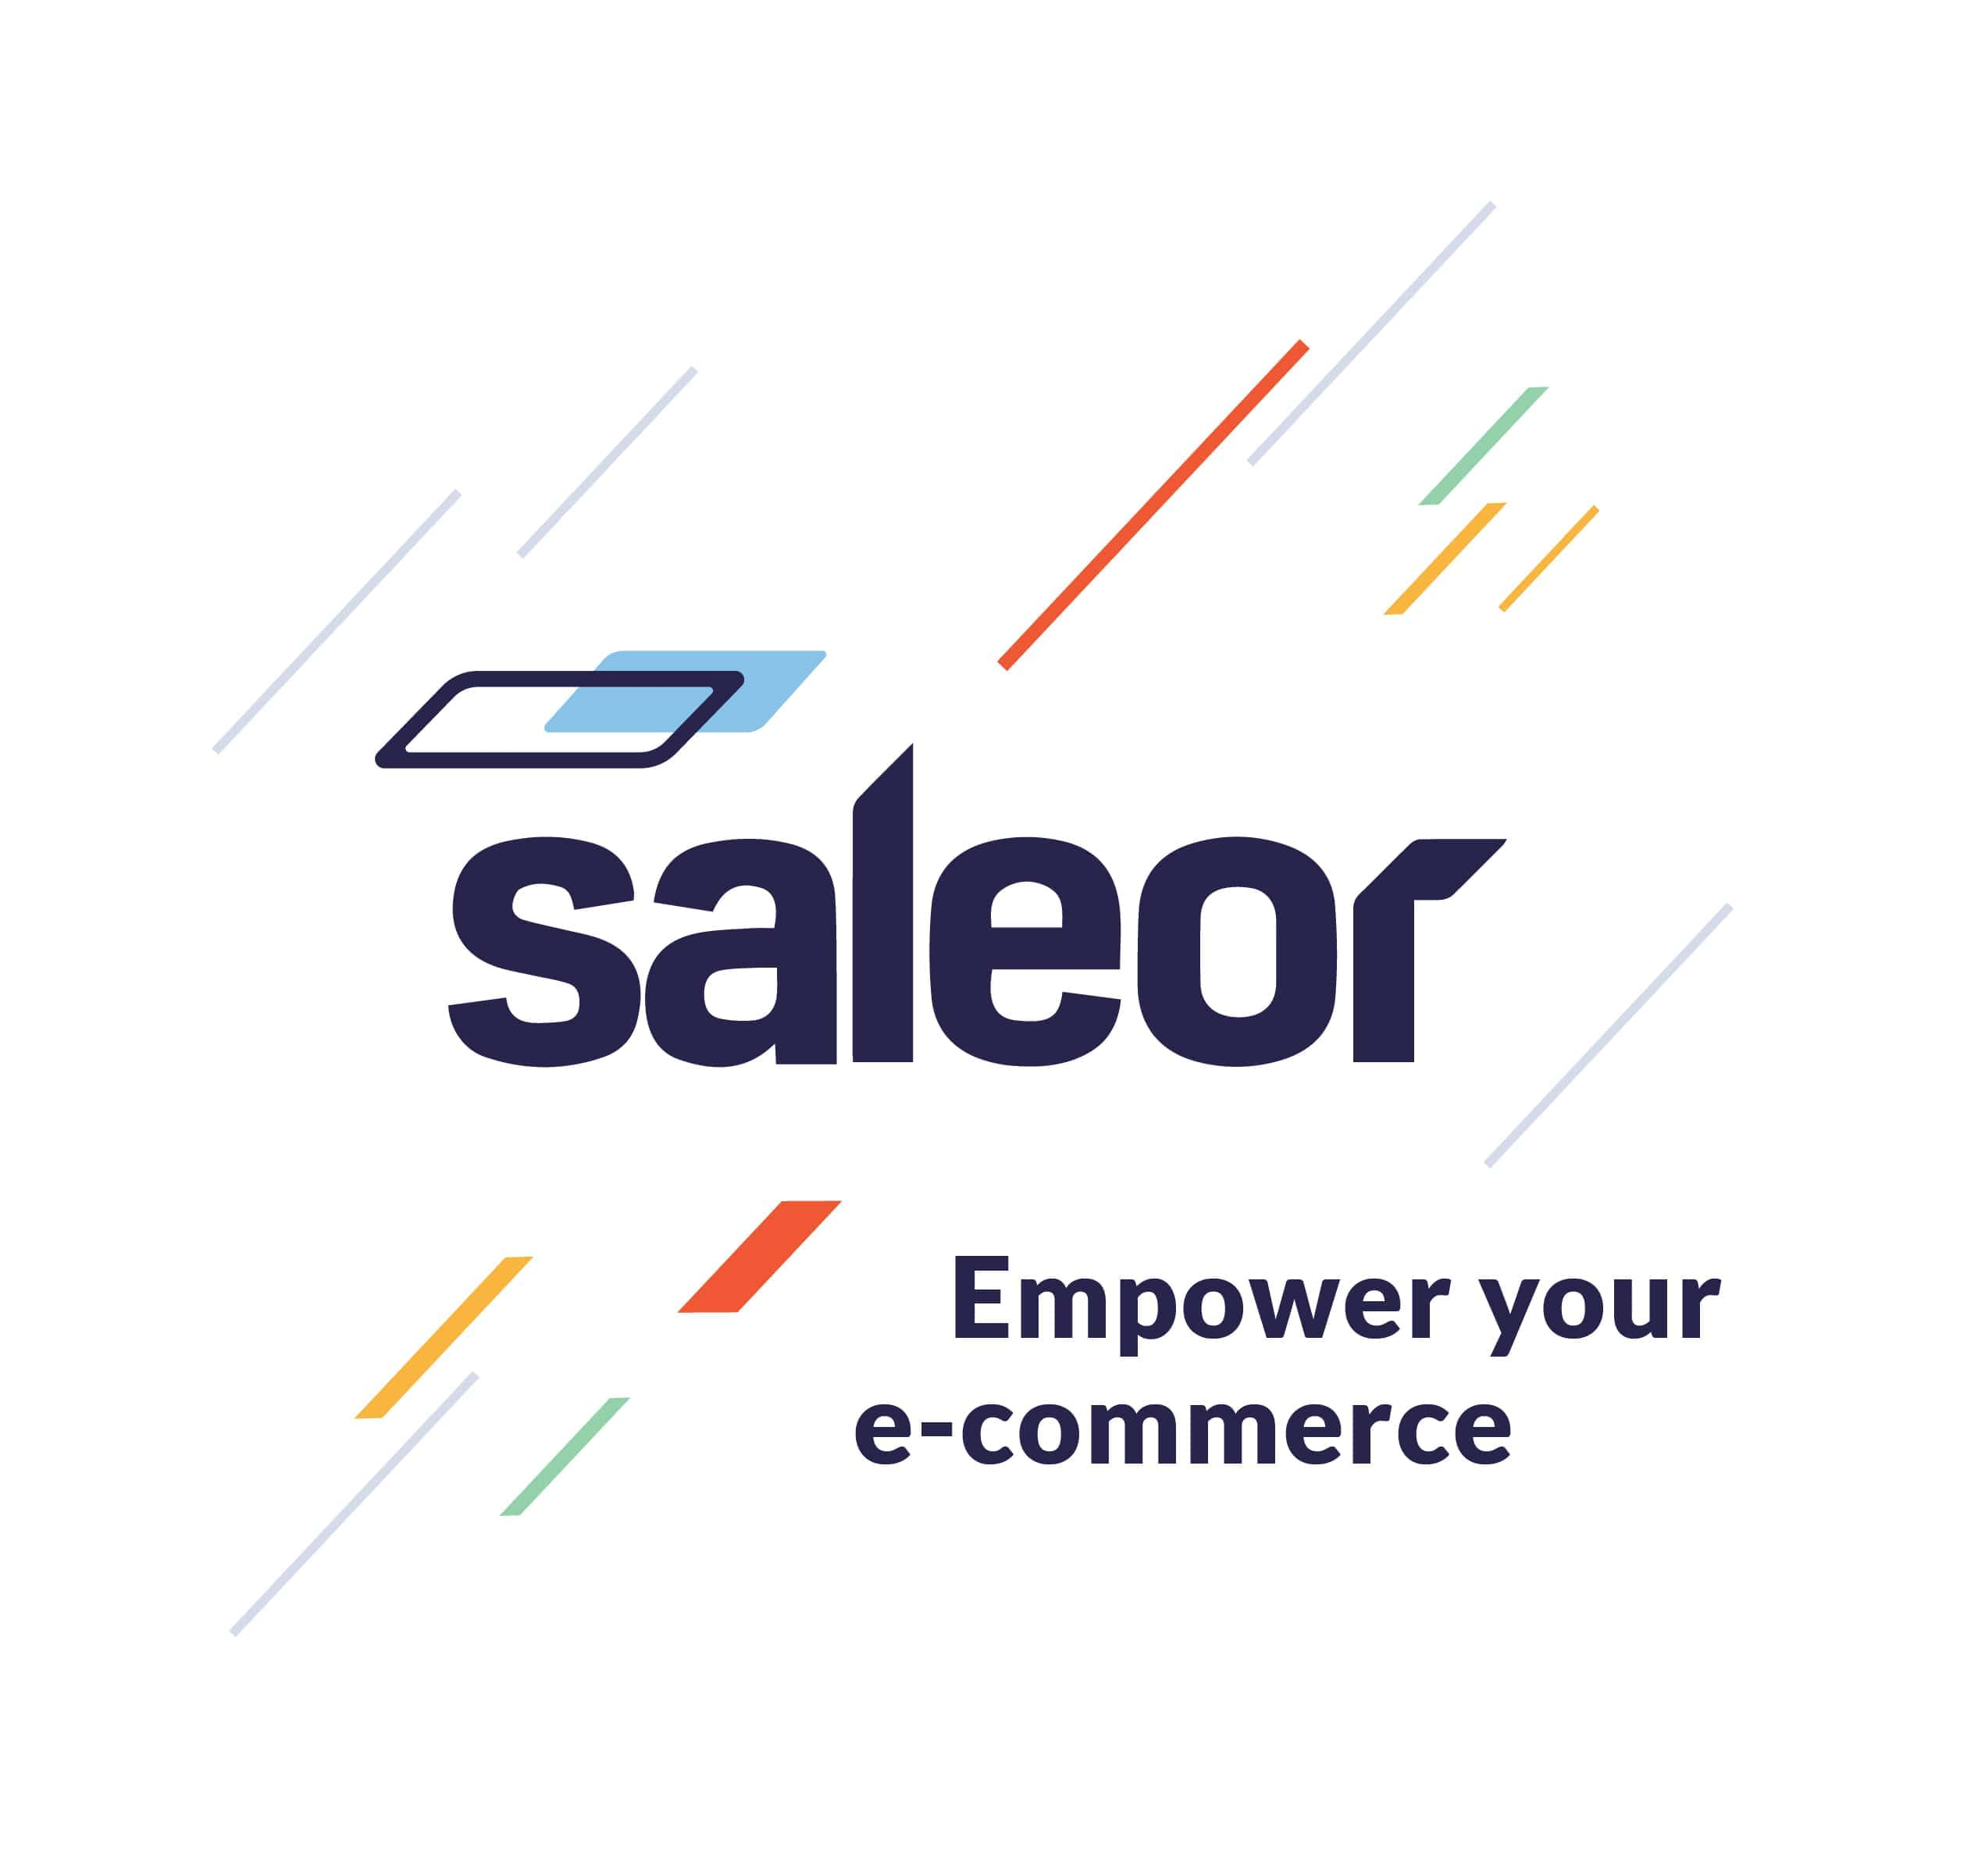 Saleor. Empower your e-commerce